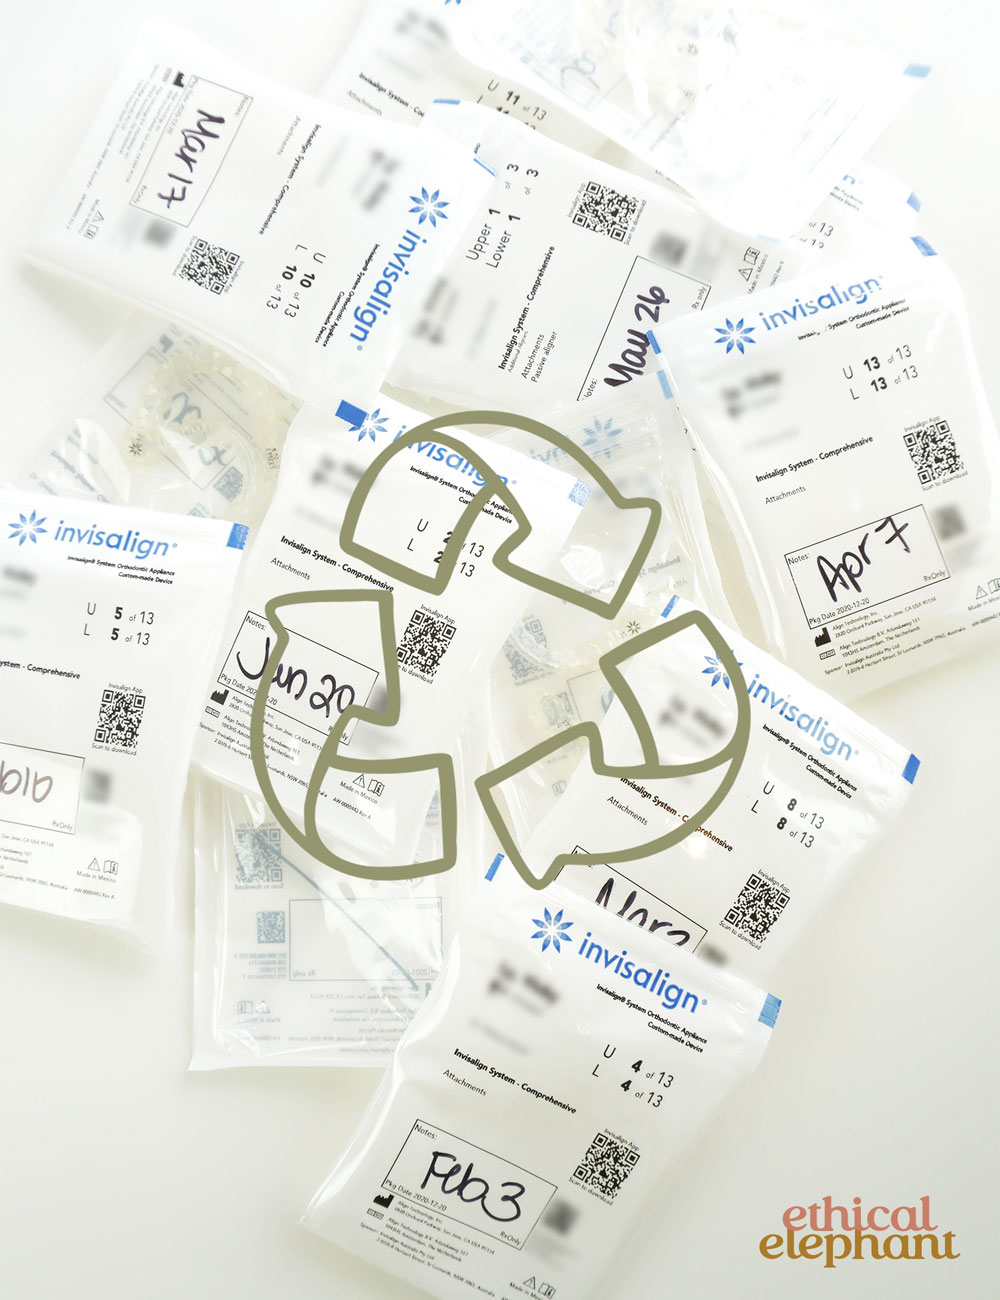 Are Invisalign aligners and bags recyclable?